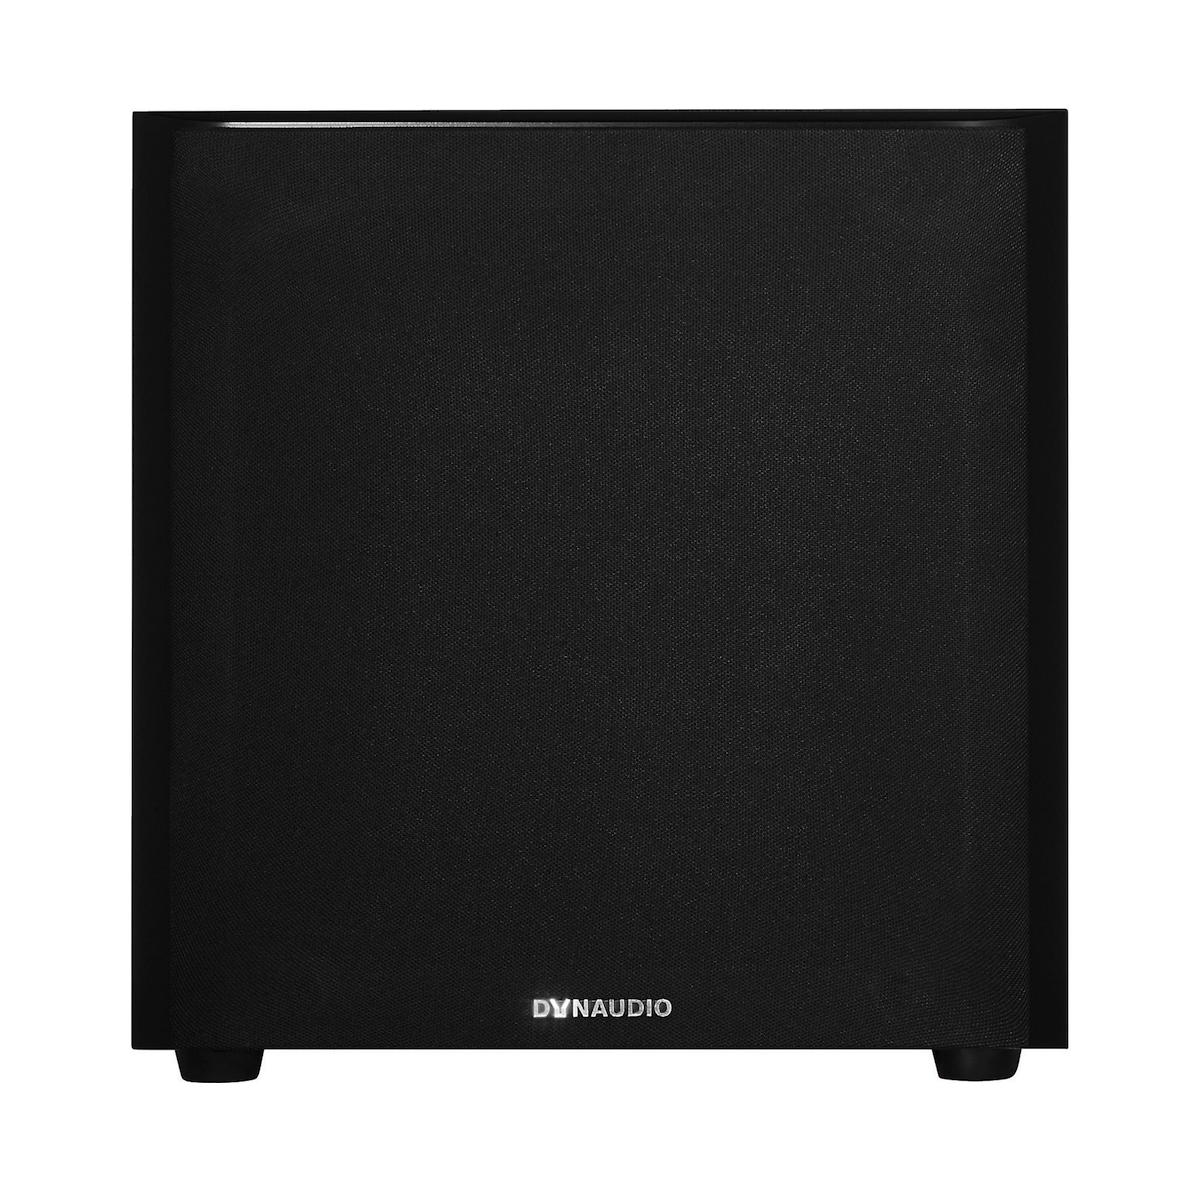 Dynaudio Sub 3 - Compact Active Subwoofer - AVStore.in